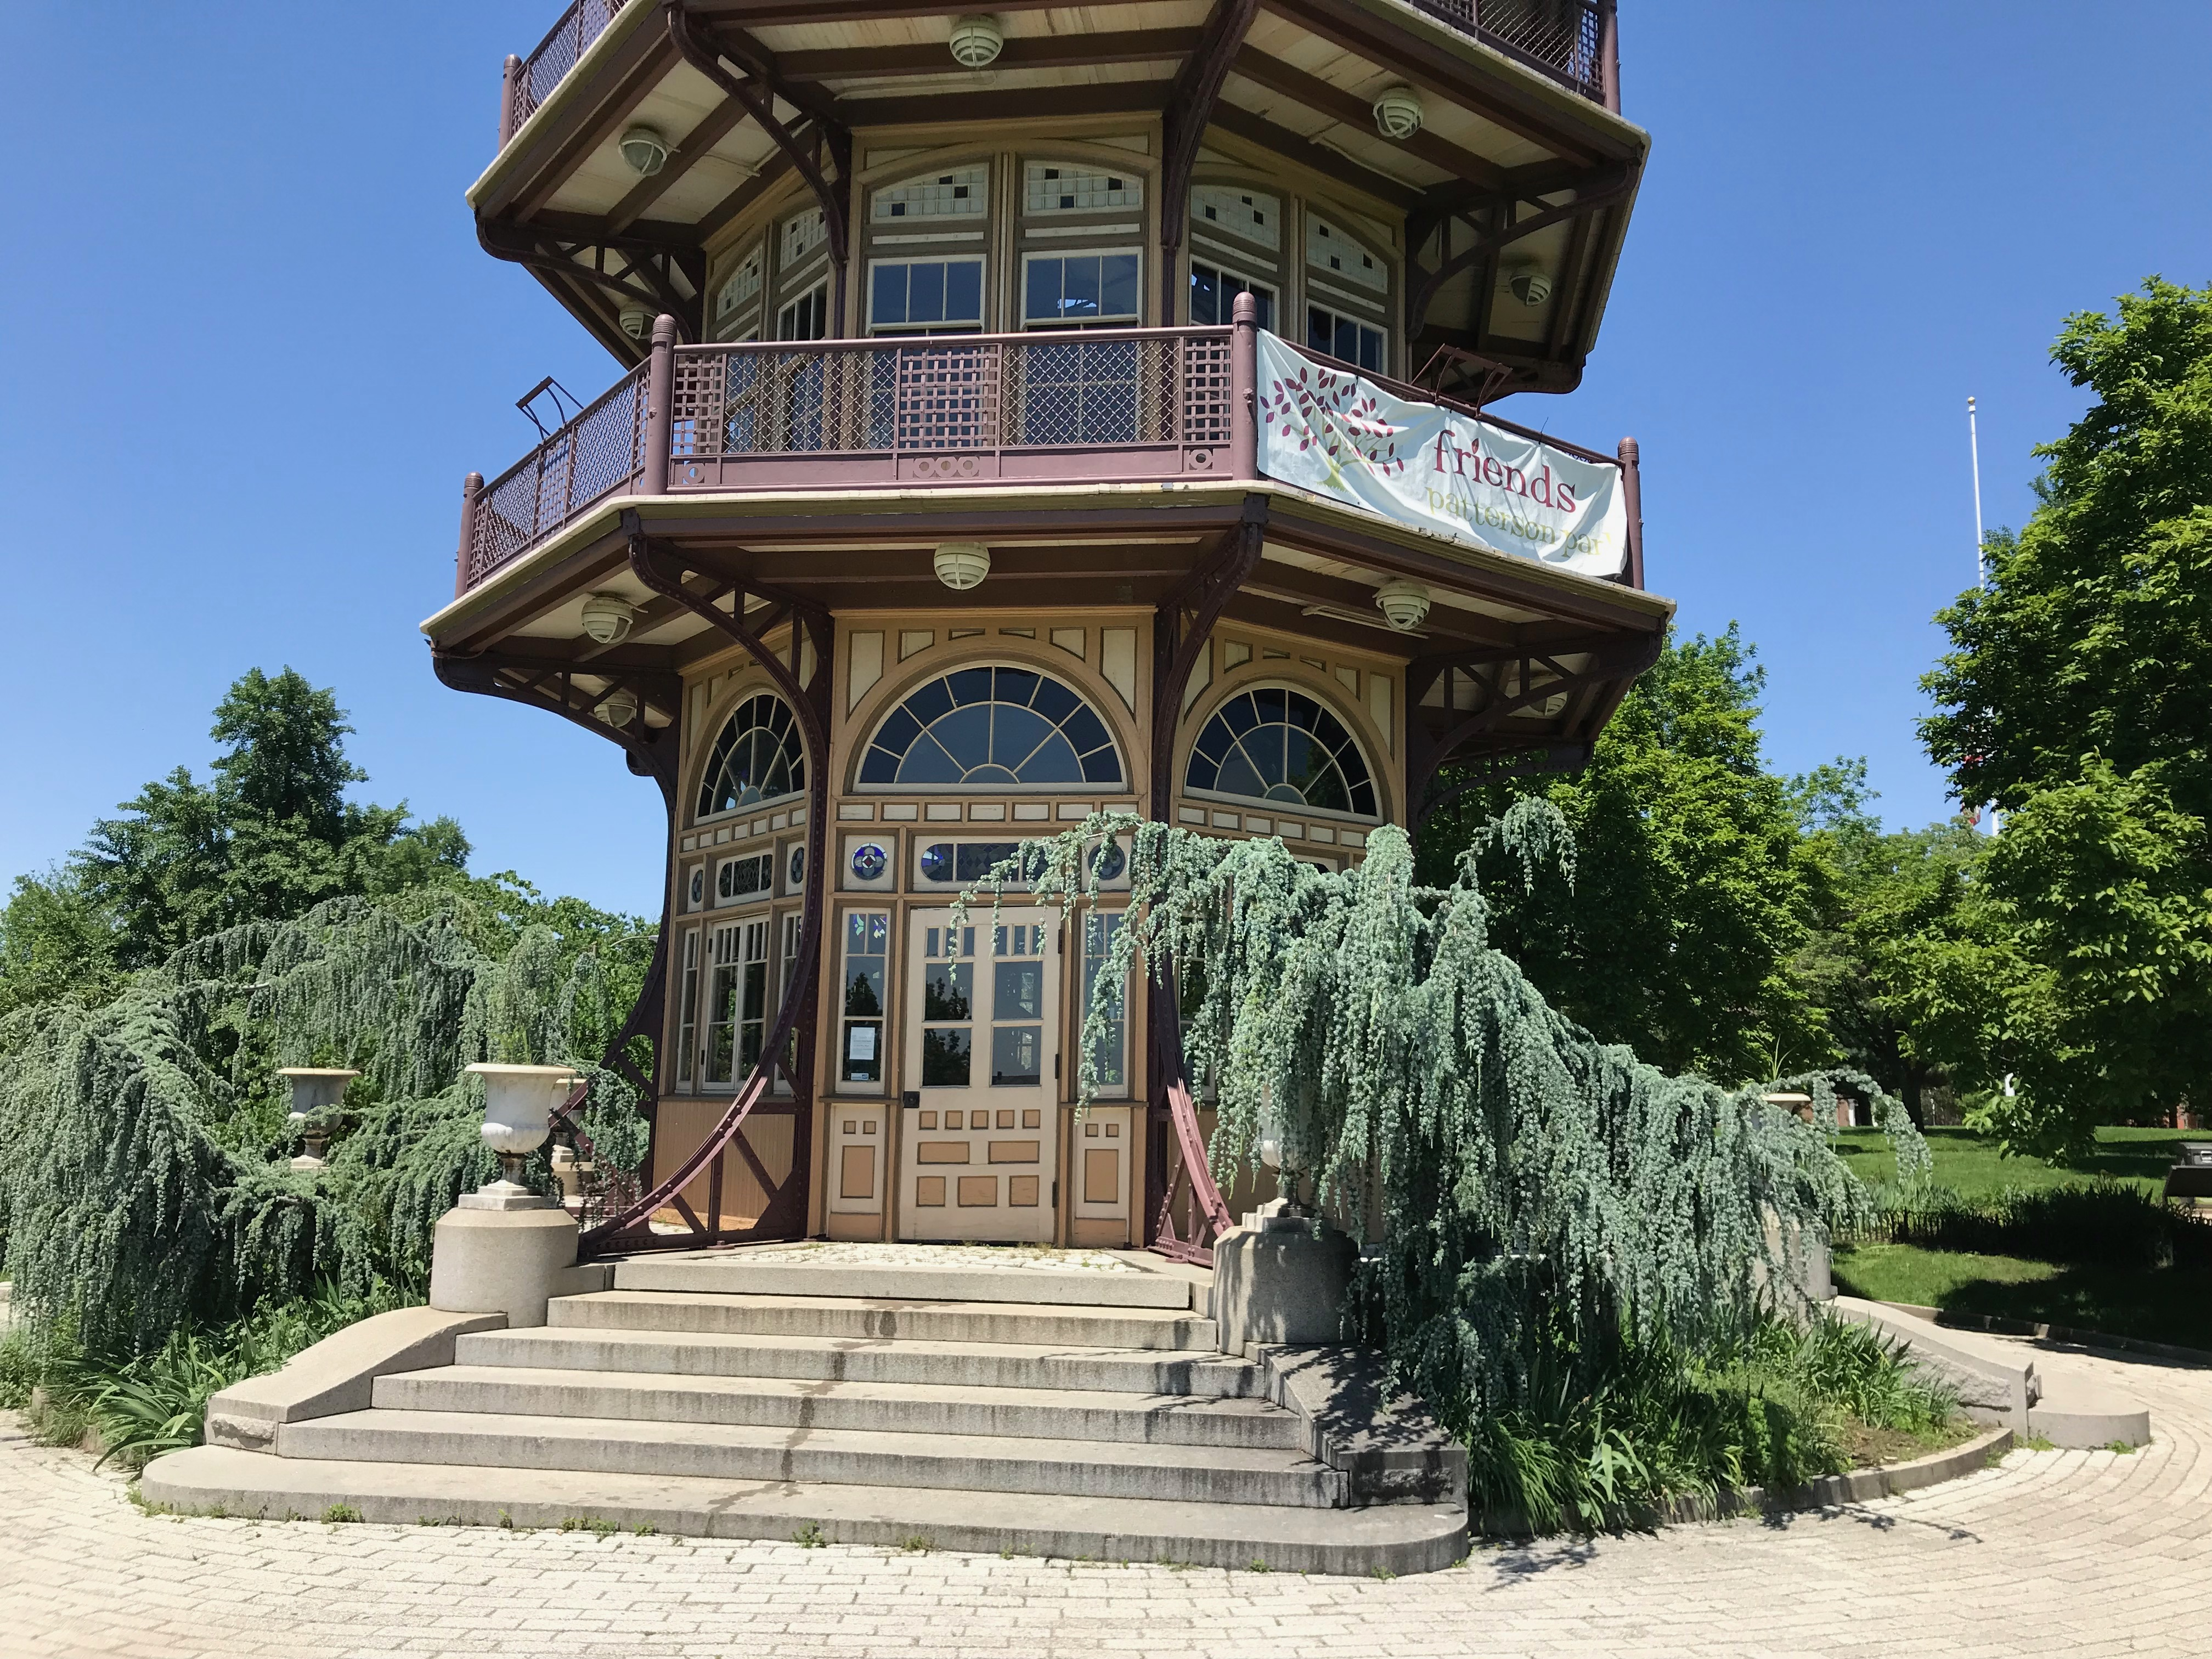 East side, Patterson Park Pagoda, Patterson Park near E. Pratt Street and S. Patterson Park Avenue, Baltimore, MD 21231, Architecture, Baltimore, Building, Maryland, HQ Photo